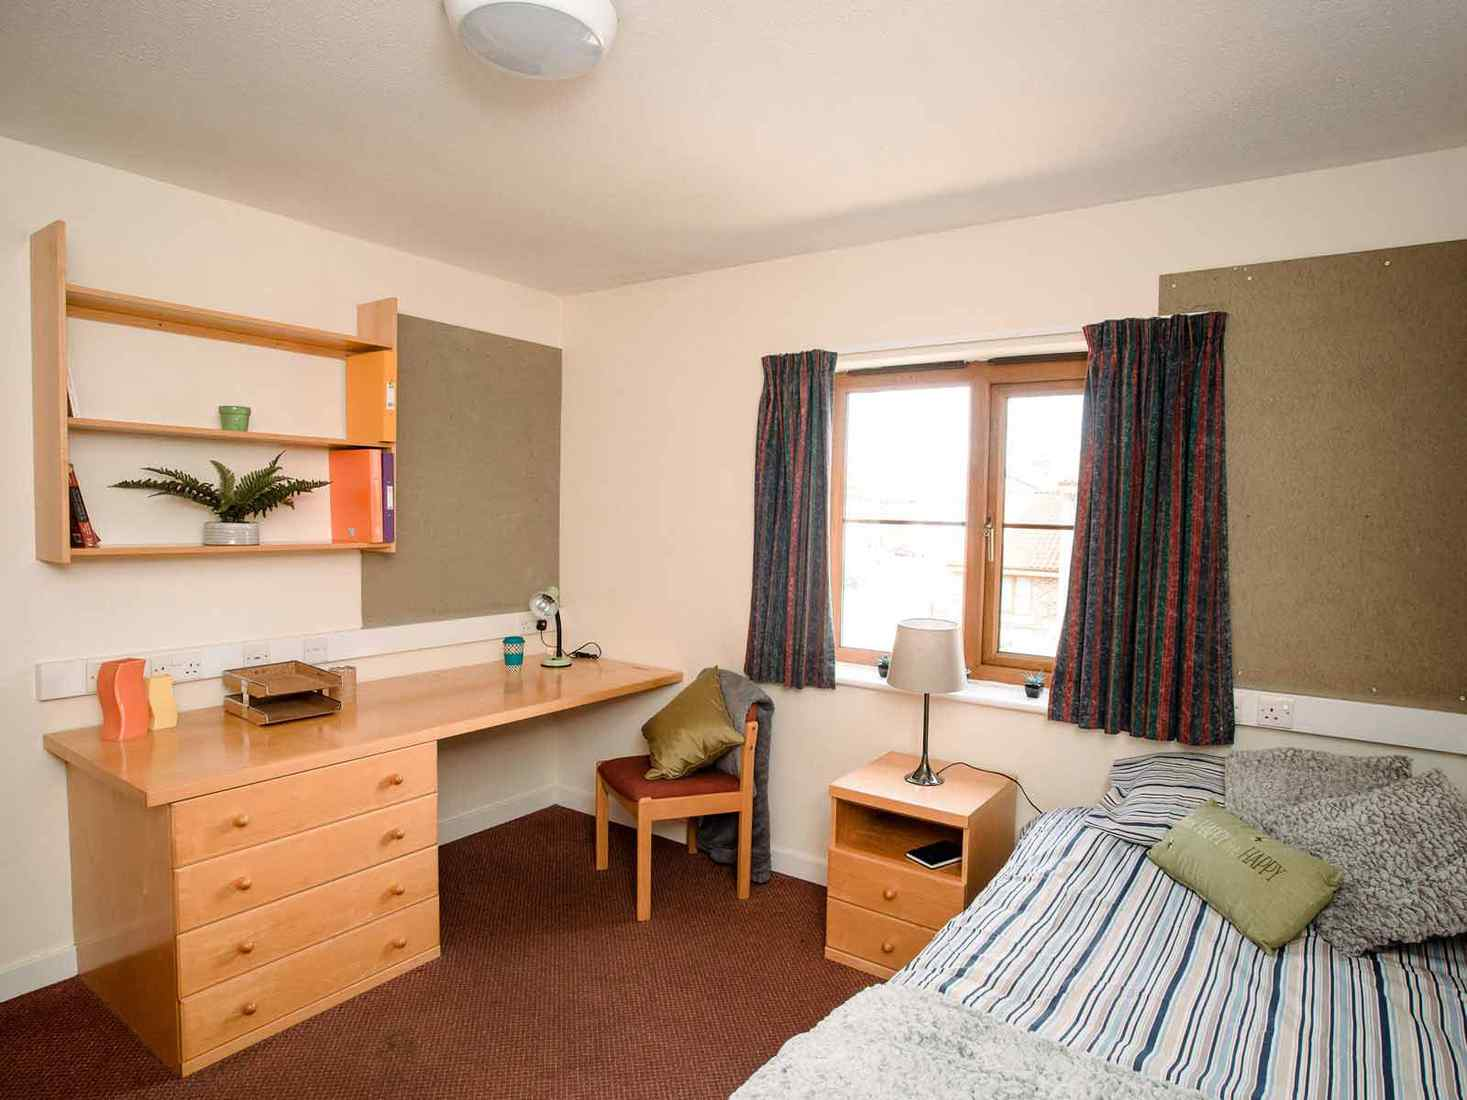 Student bedroom in Limes Court with bed, desk, side table, shelves and noticeboard